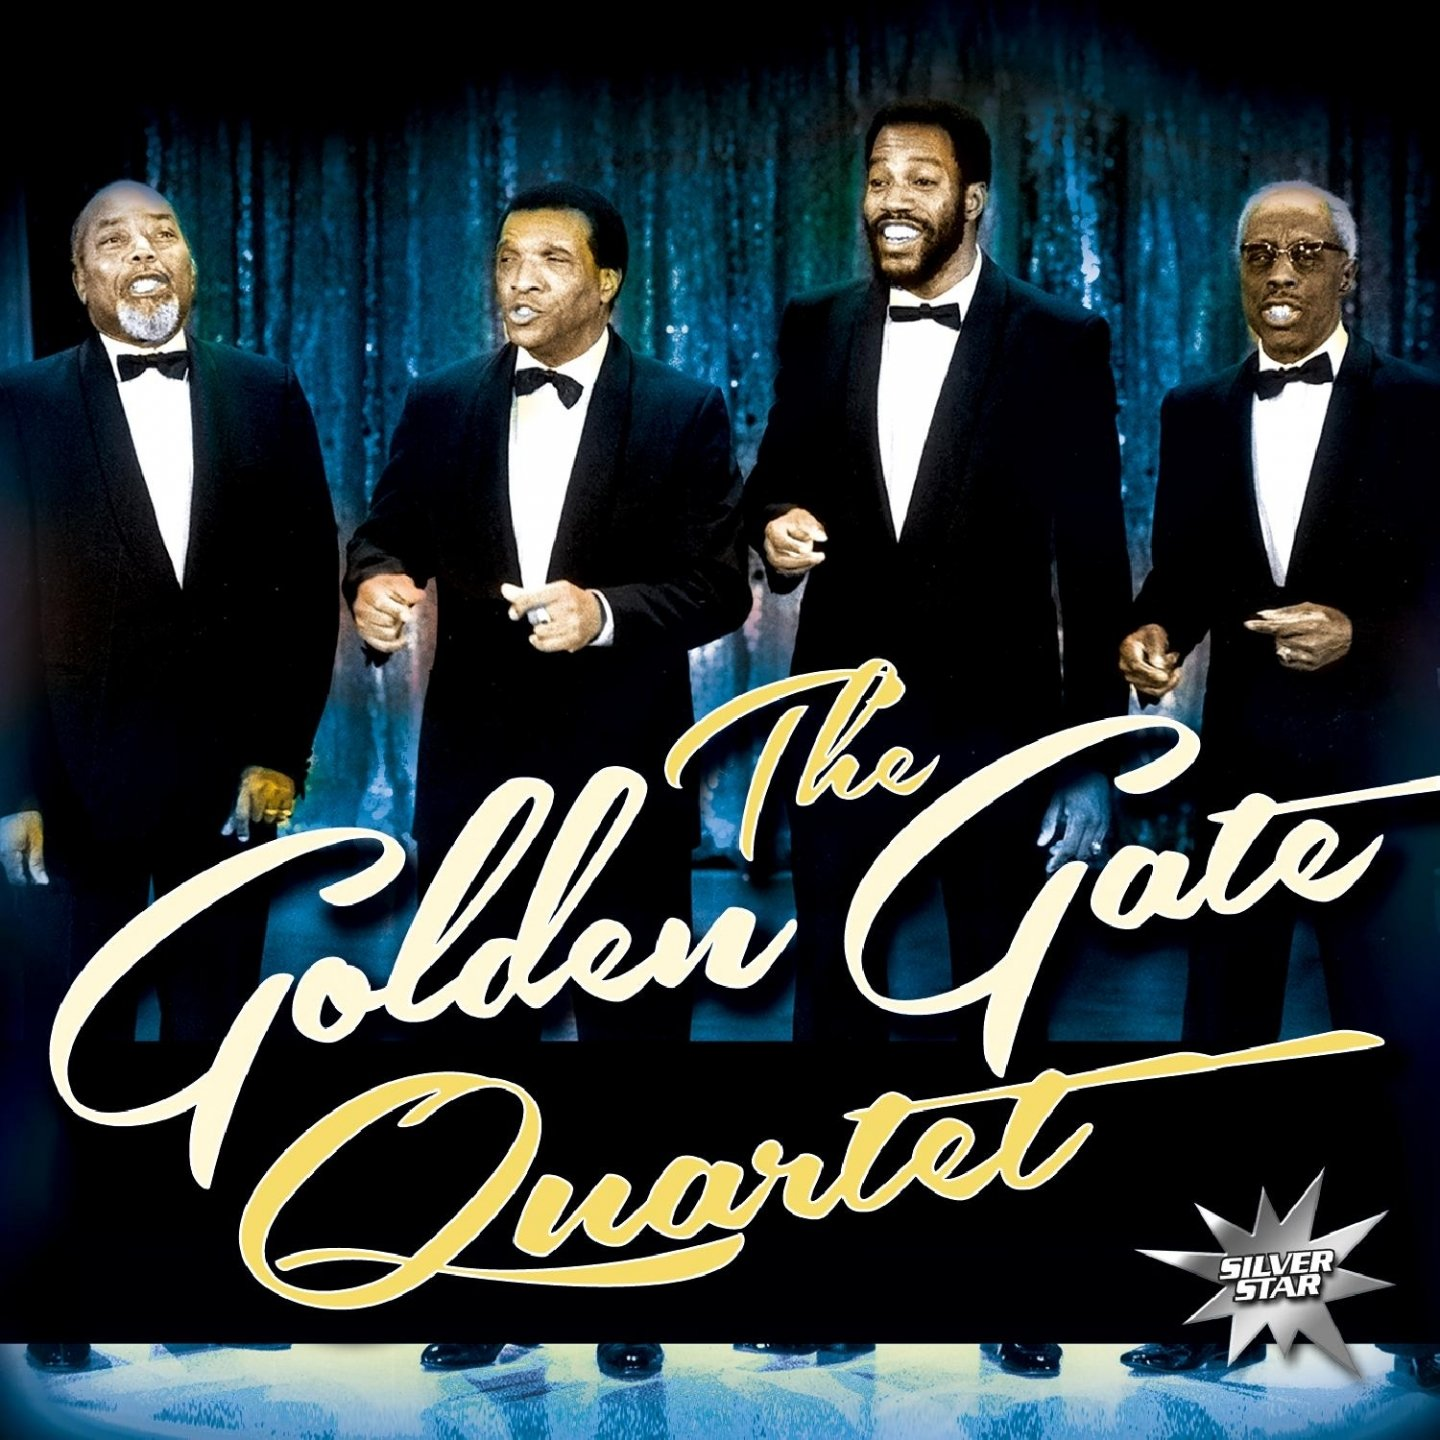 The Golden Gate Quartet The Golden Gate Quartet the silver gate